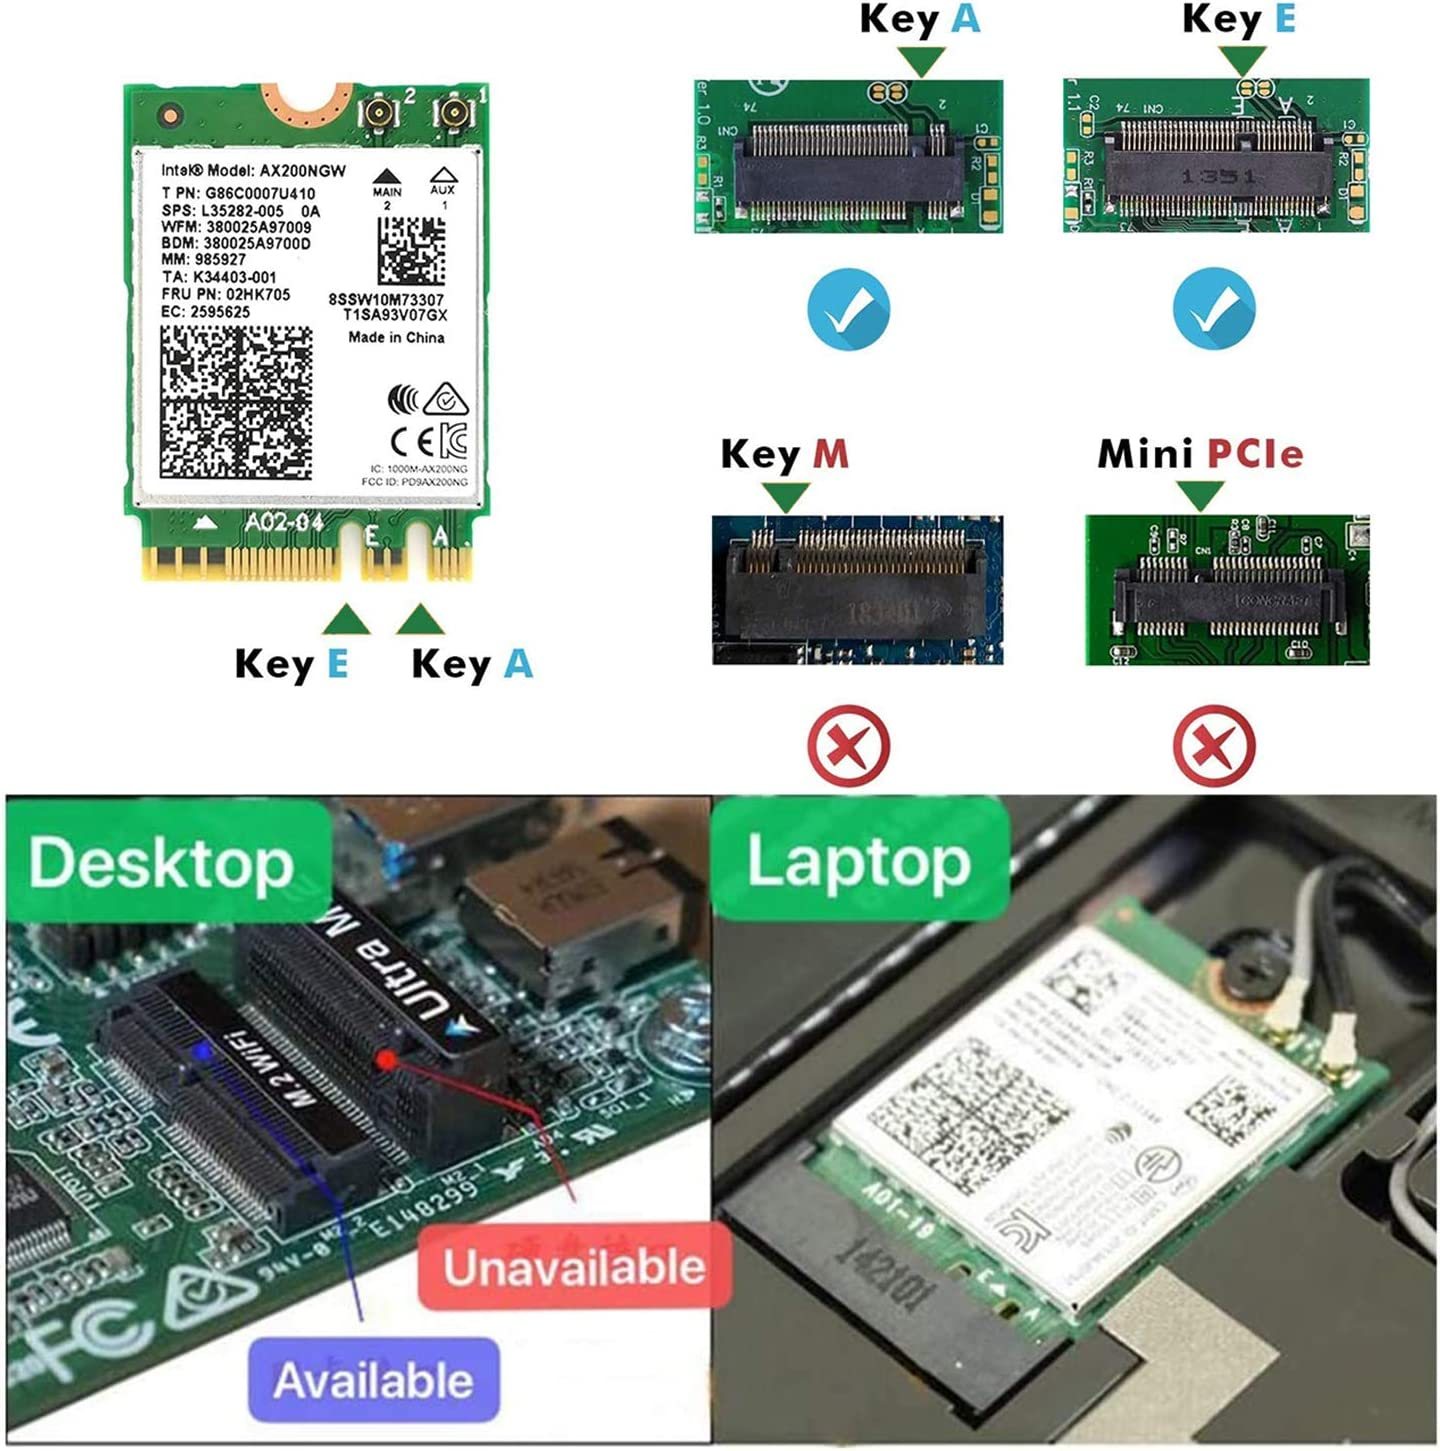 2.4G-600Mbps, 5G-2400Mbps, 6G-2400Mbps AX210 WiFi 6E PCIe Wireless WiFi Card 3 Band Latest Intel Chip and Heat Sink Technology